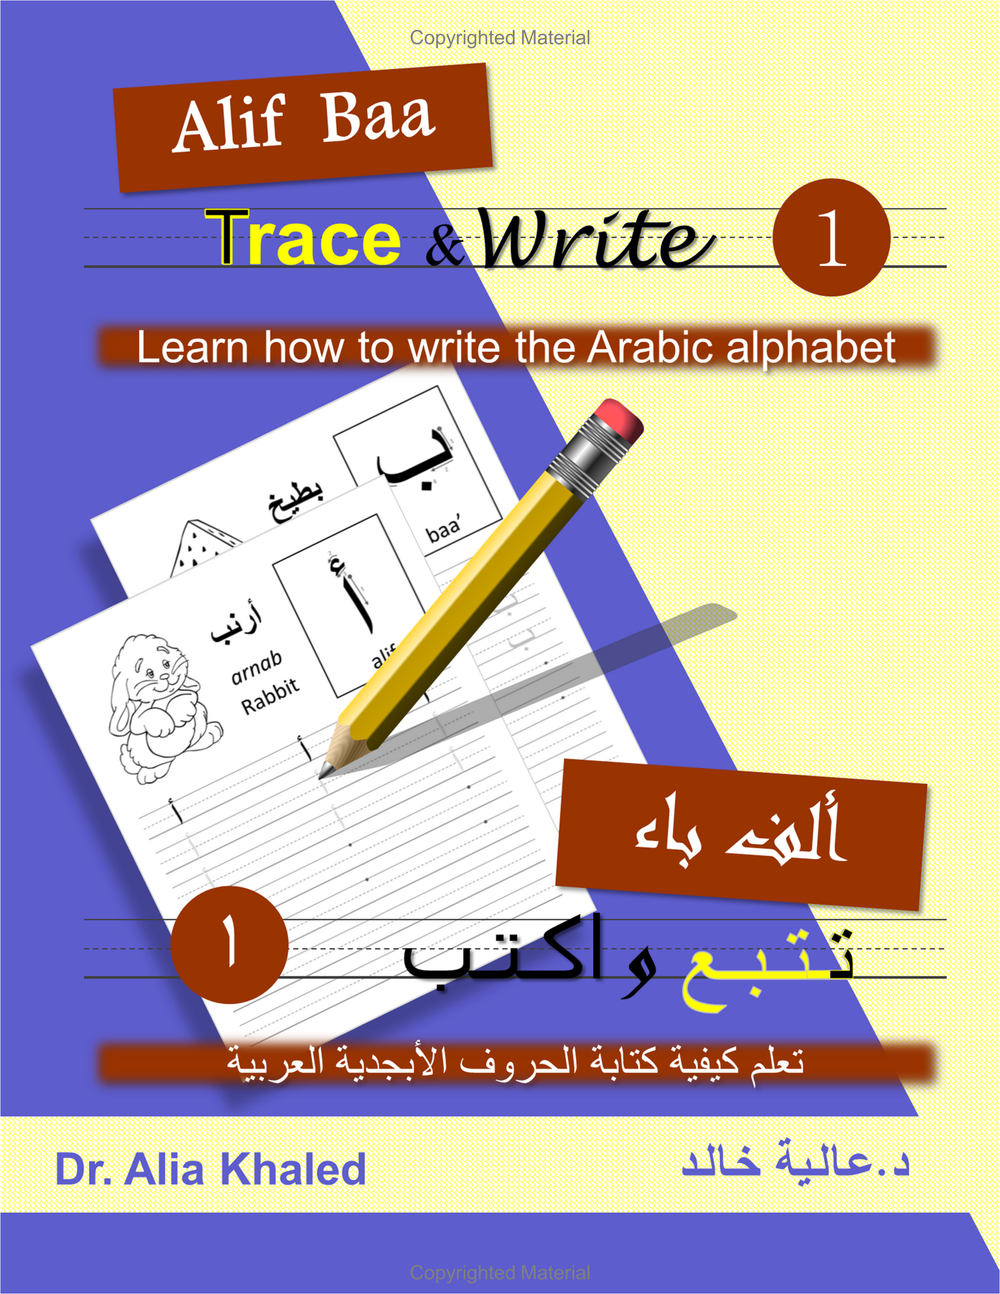 Image of Alif Baa Trace & Write 1: Learn How to Write the Arabic Alphabet